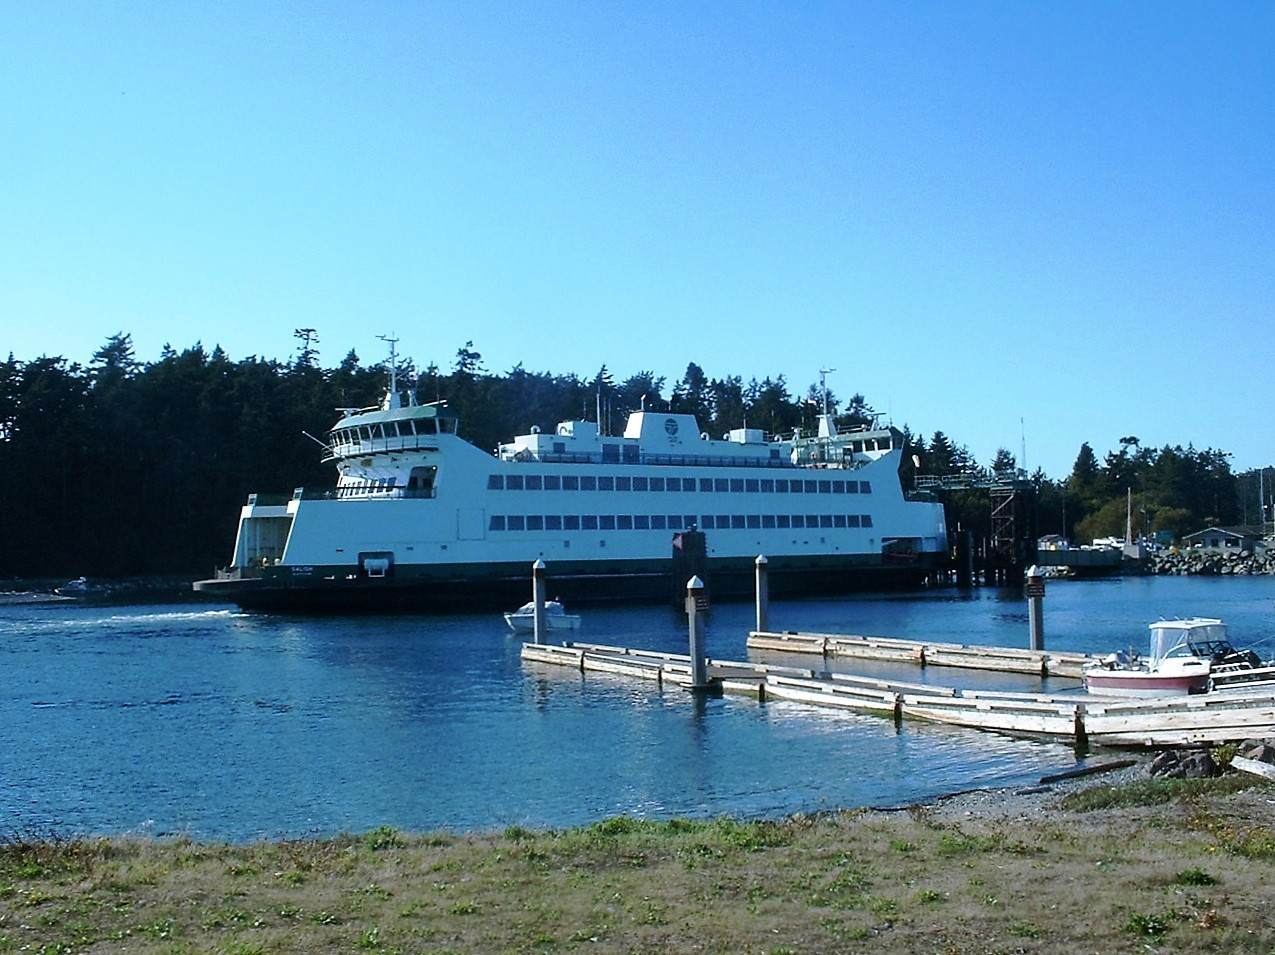 Whidbey Island Ferry Port Townsend